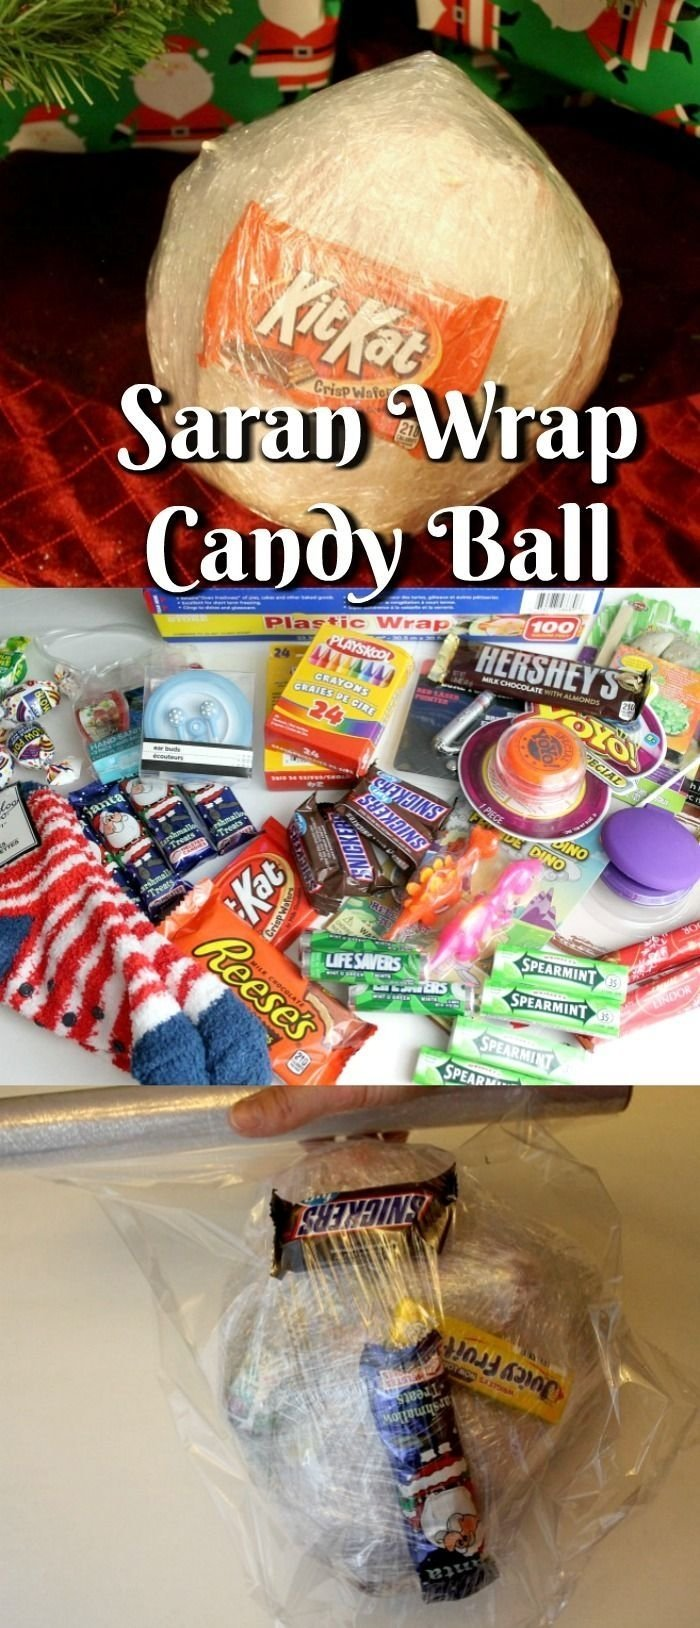 10 Lovely Christmas Party Ideas For Teenagers sweet idea party ideas for adults games fun family activities 2020